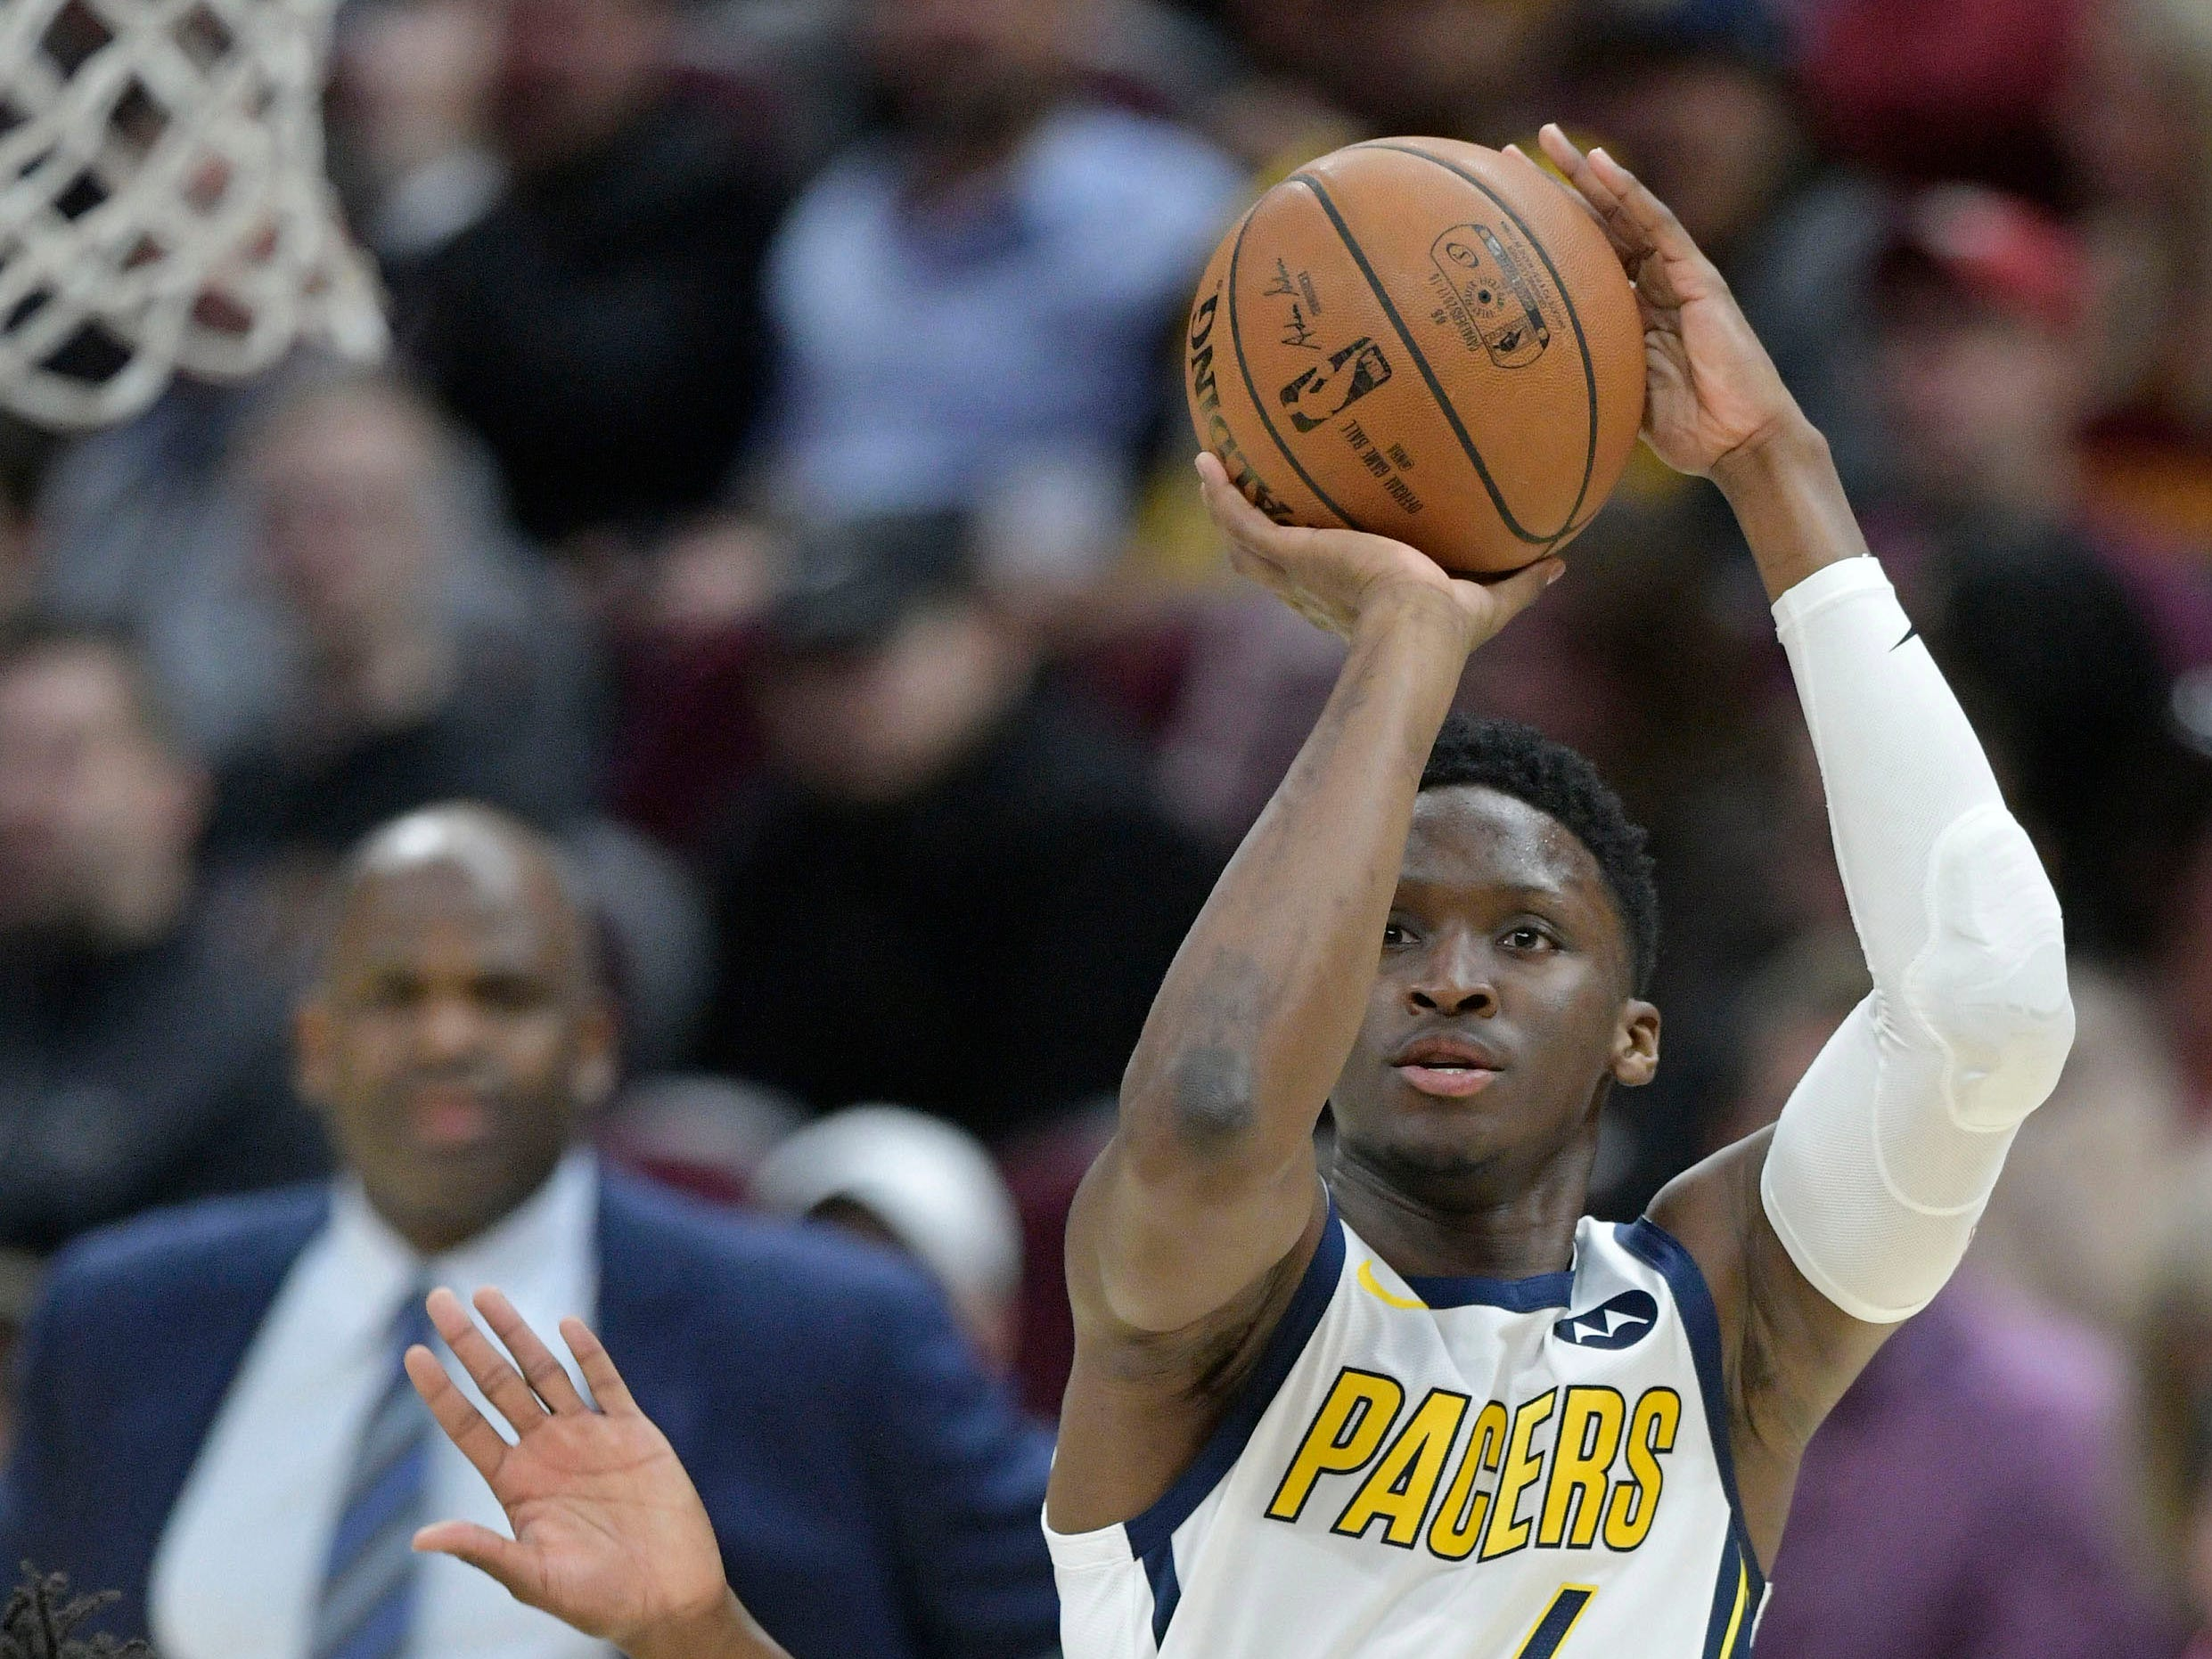 Jan 8, 2019; Cleveland, OH, USA; Indiana Pacers guard Victor Oladipo (4) shoots against the Cleveland Cavaliers in the first quarter at Quicken Loans Arena.